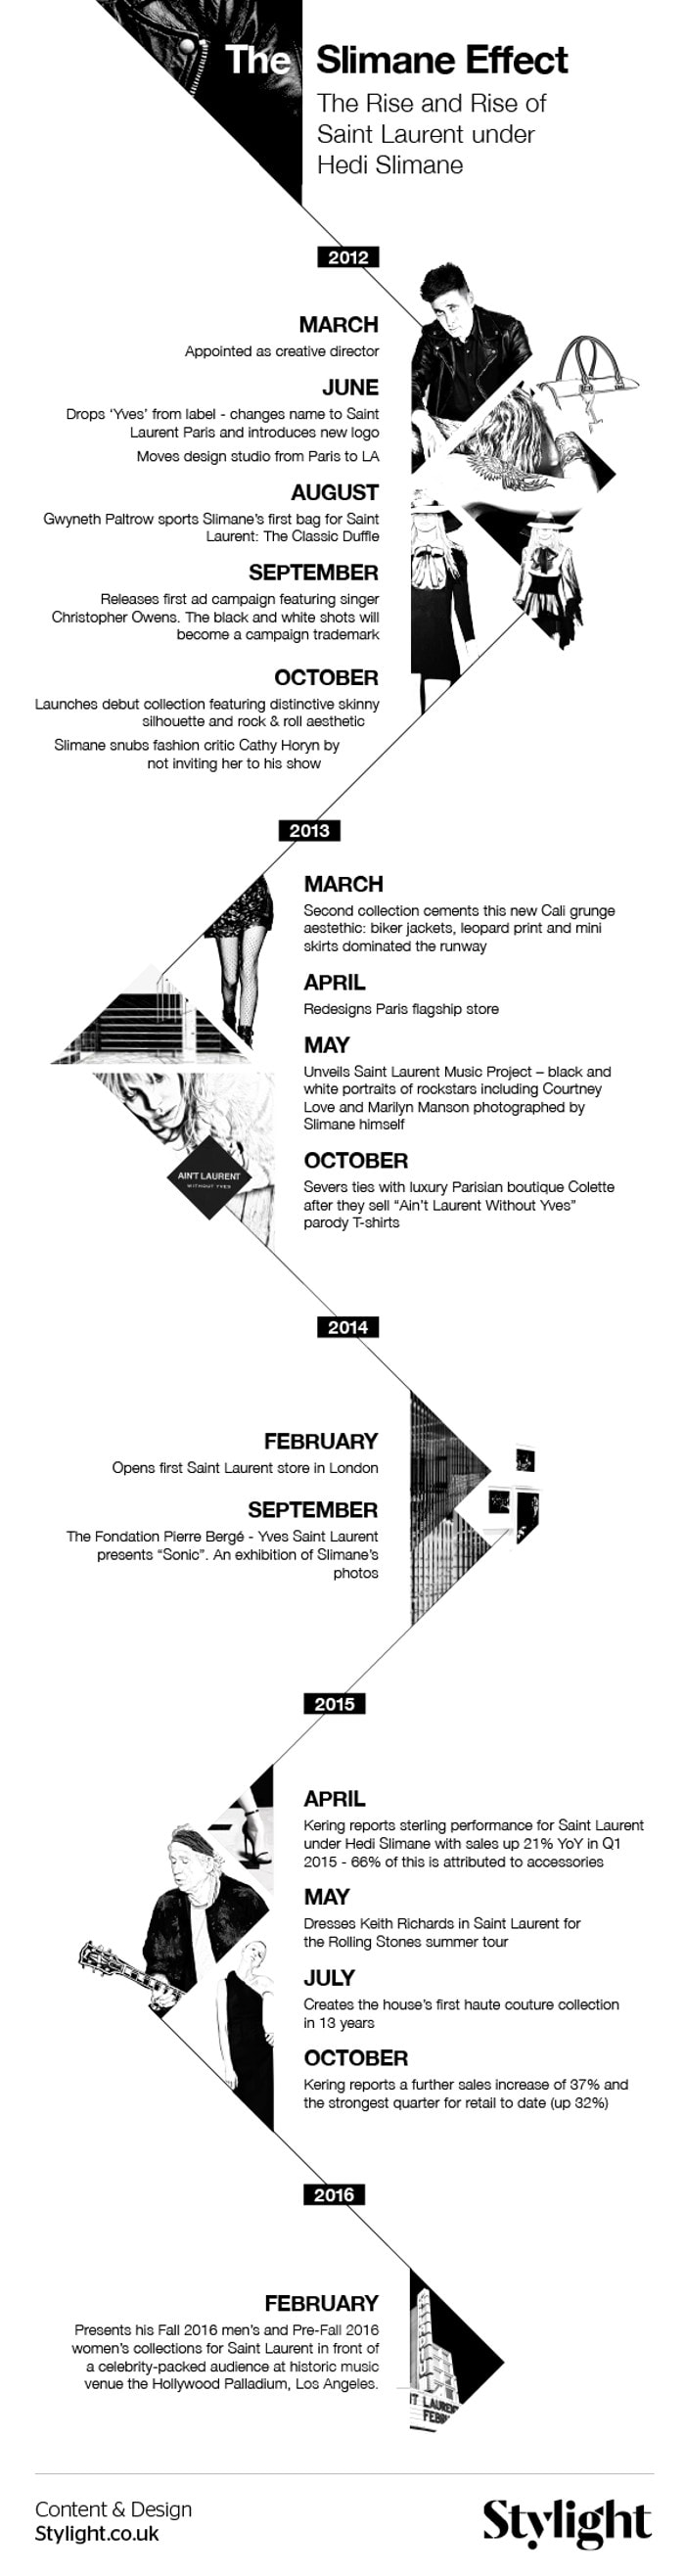 Infographic - Hedi Slimane exits YSL, The Slimane Effect